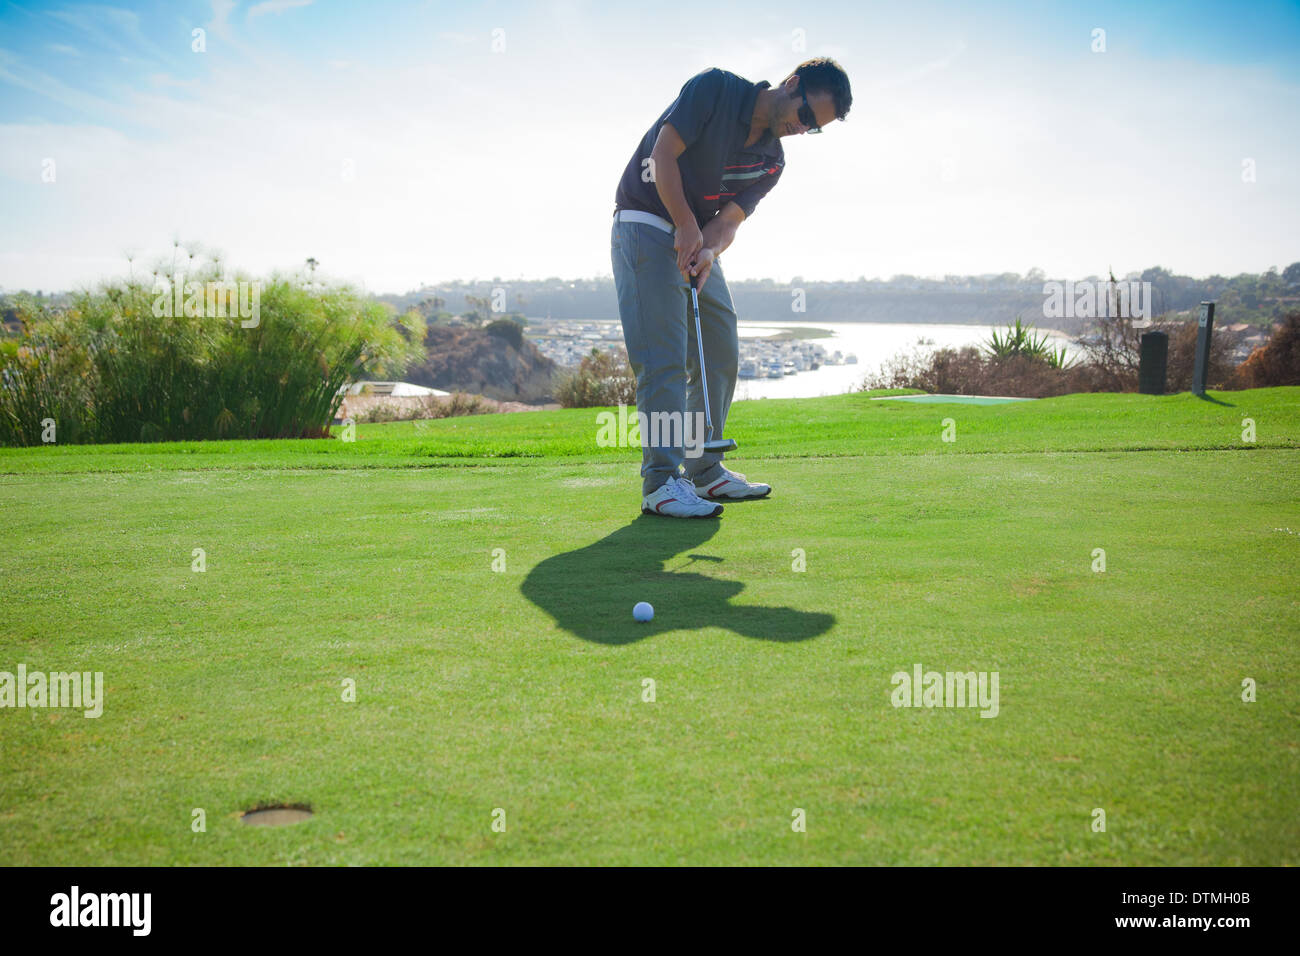 30 year old man putts on the green for a birdie on the golf course - Stock Image